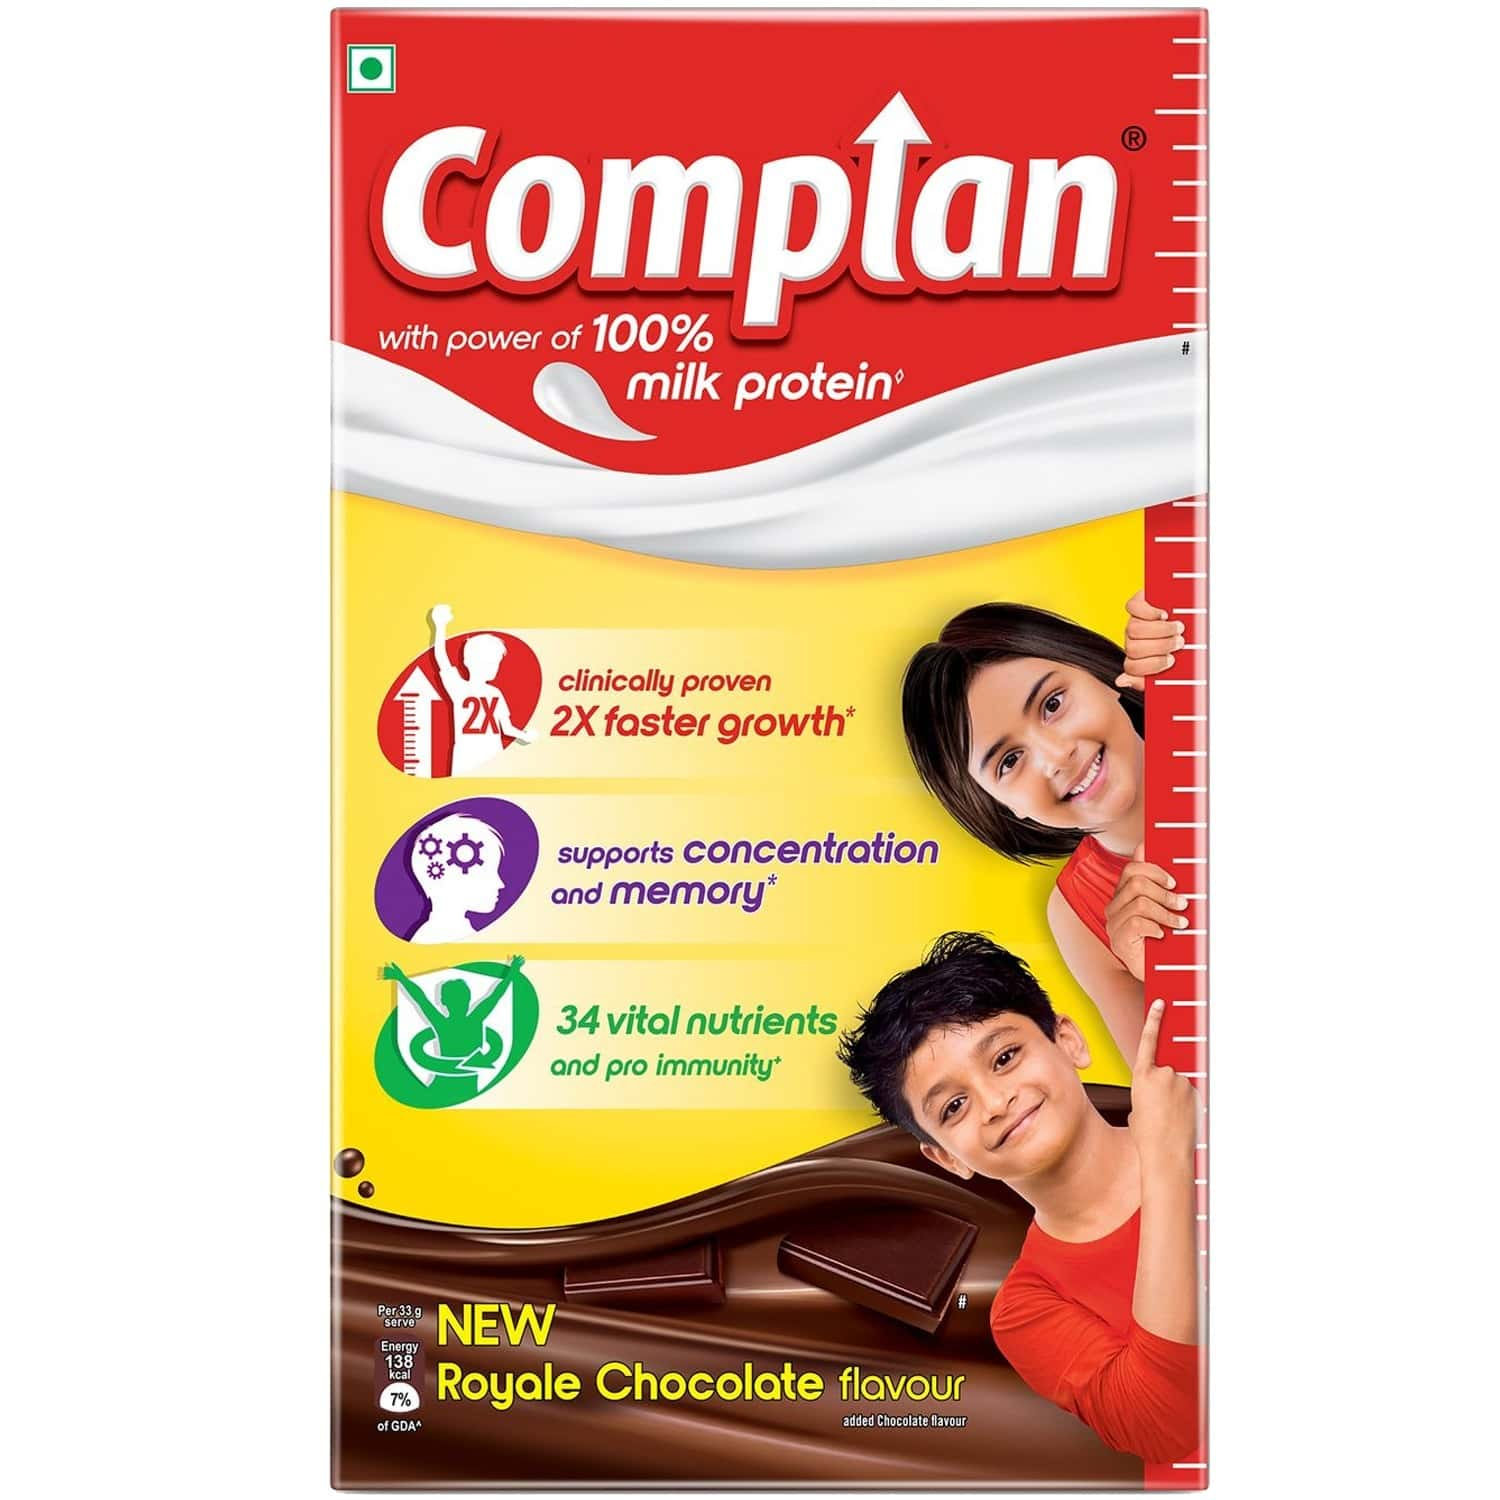 Complan Nutrition And Health Drink Royale Chocolate 1kg, Refill Box